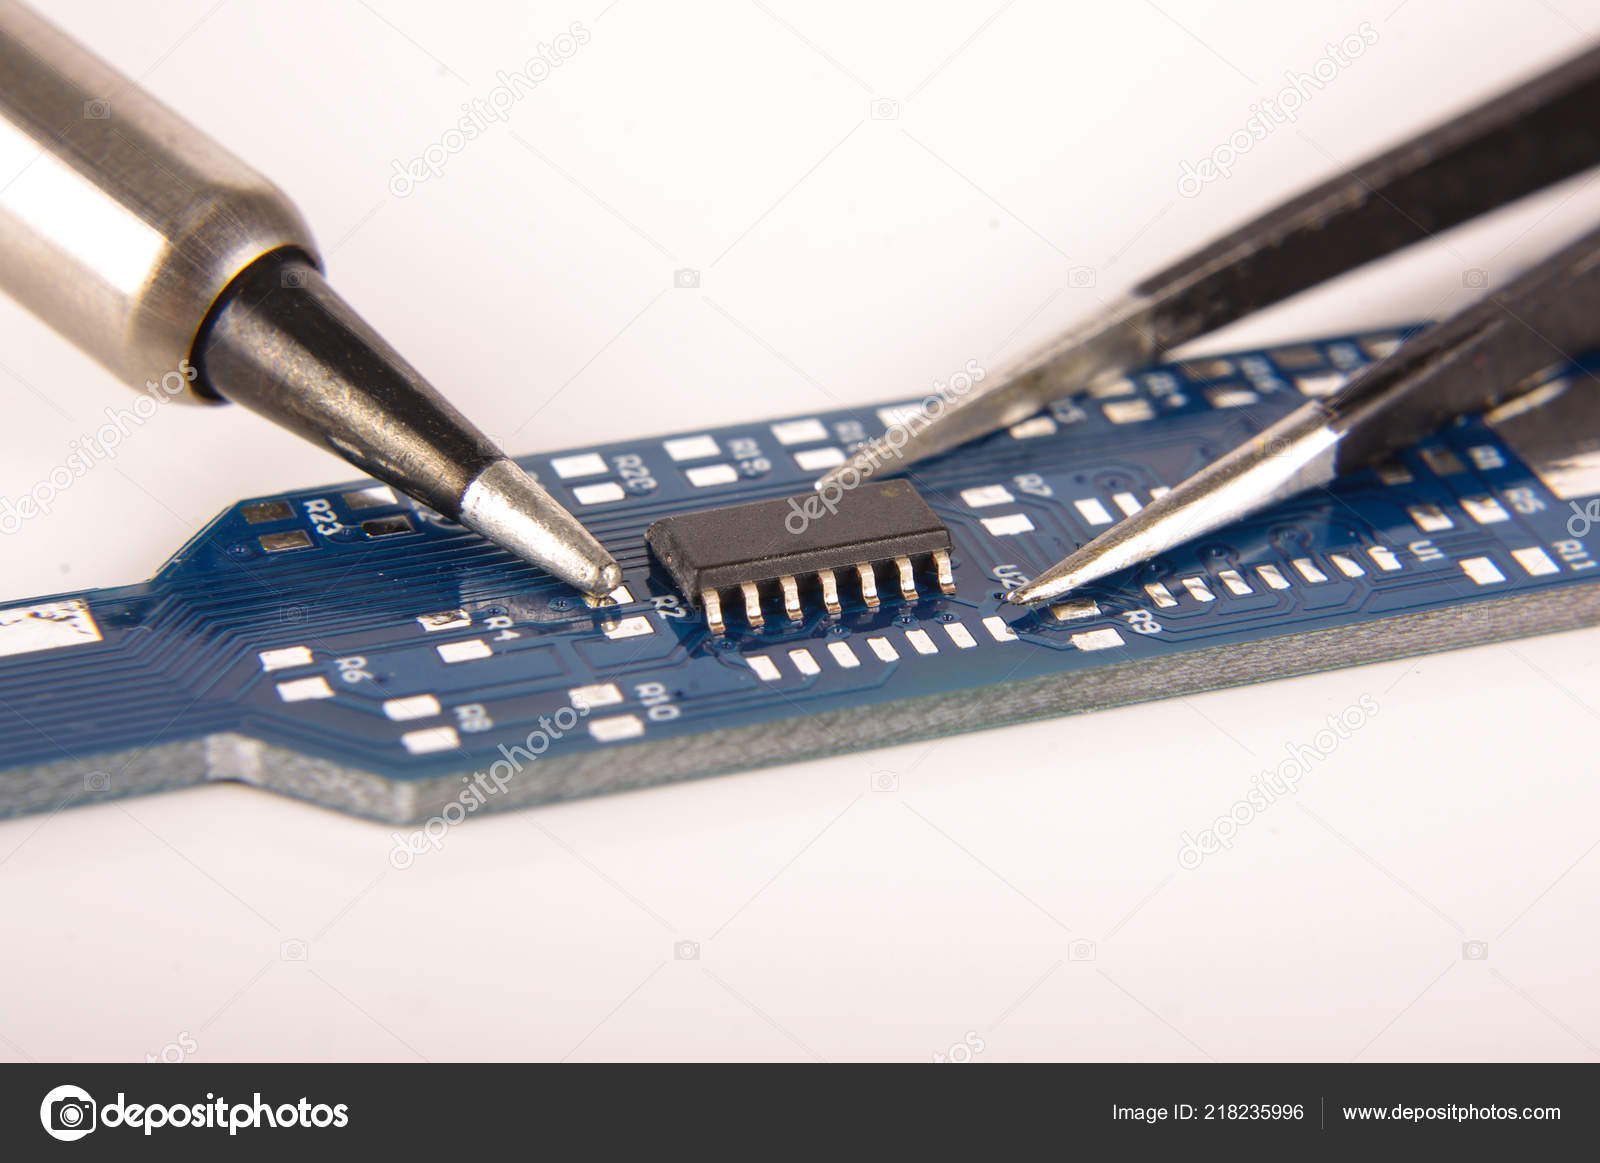 Small Electronics Integrated Circuit Empty Printed Board Ic On Ready For Hand Assembly Amphoto